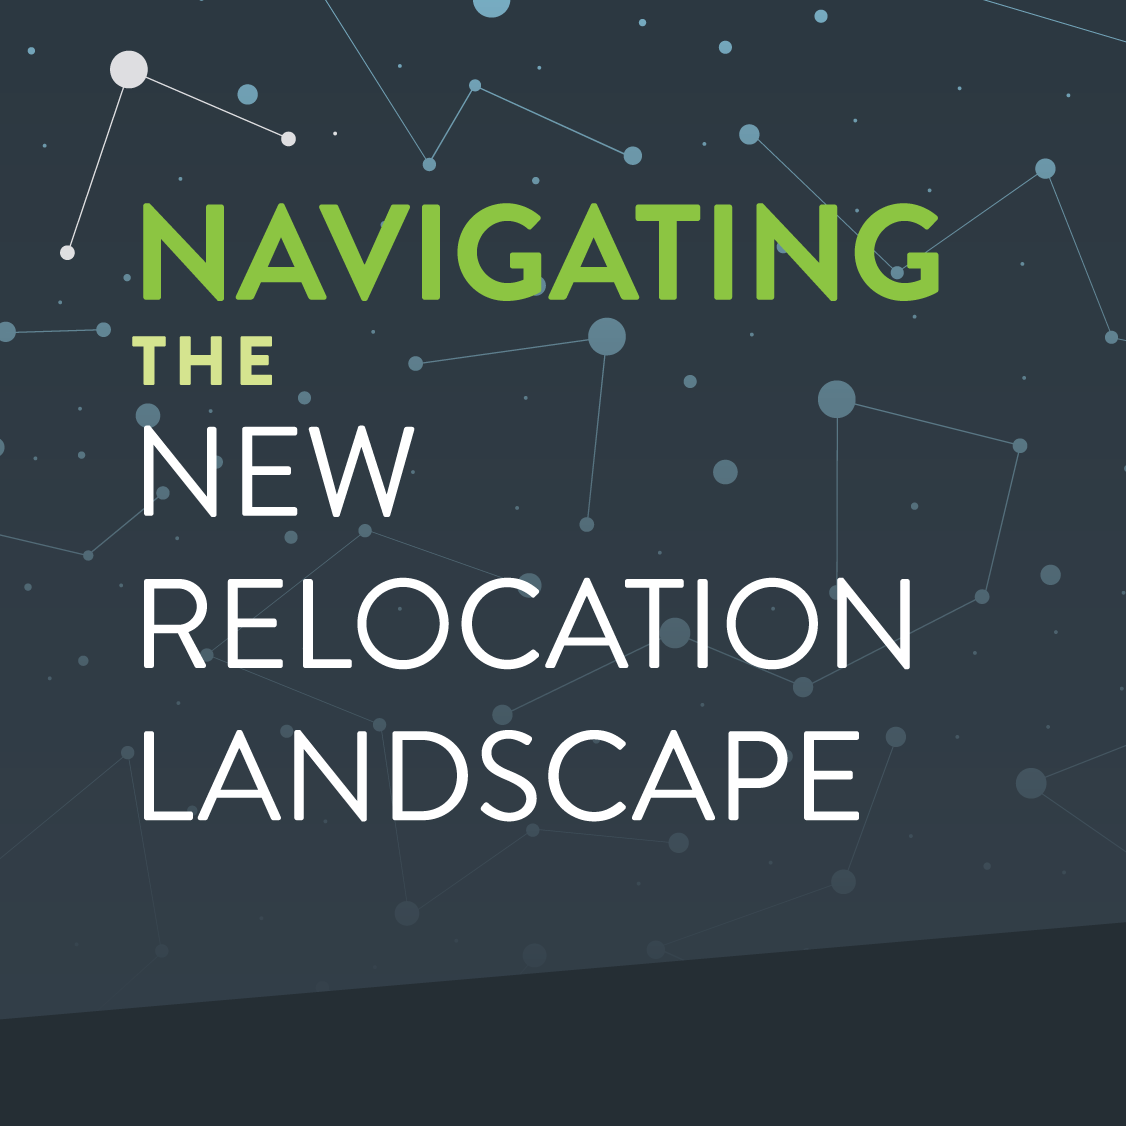 Navigating the New Relocation Landscape